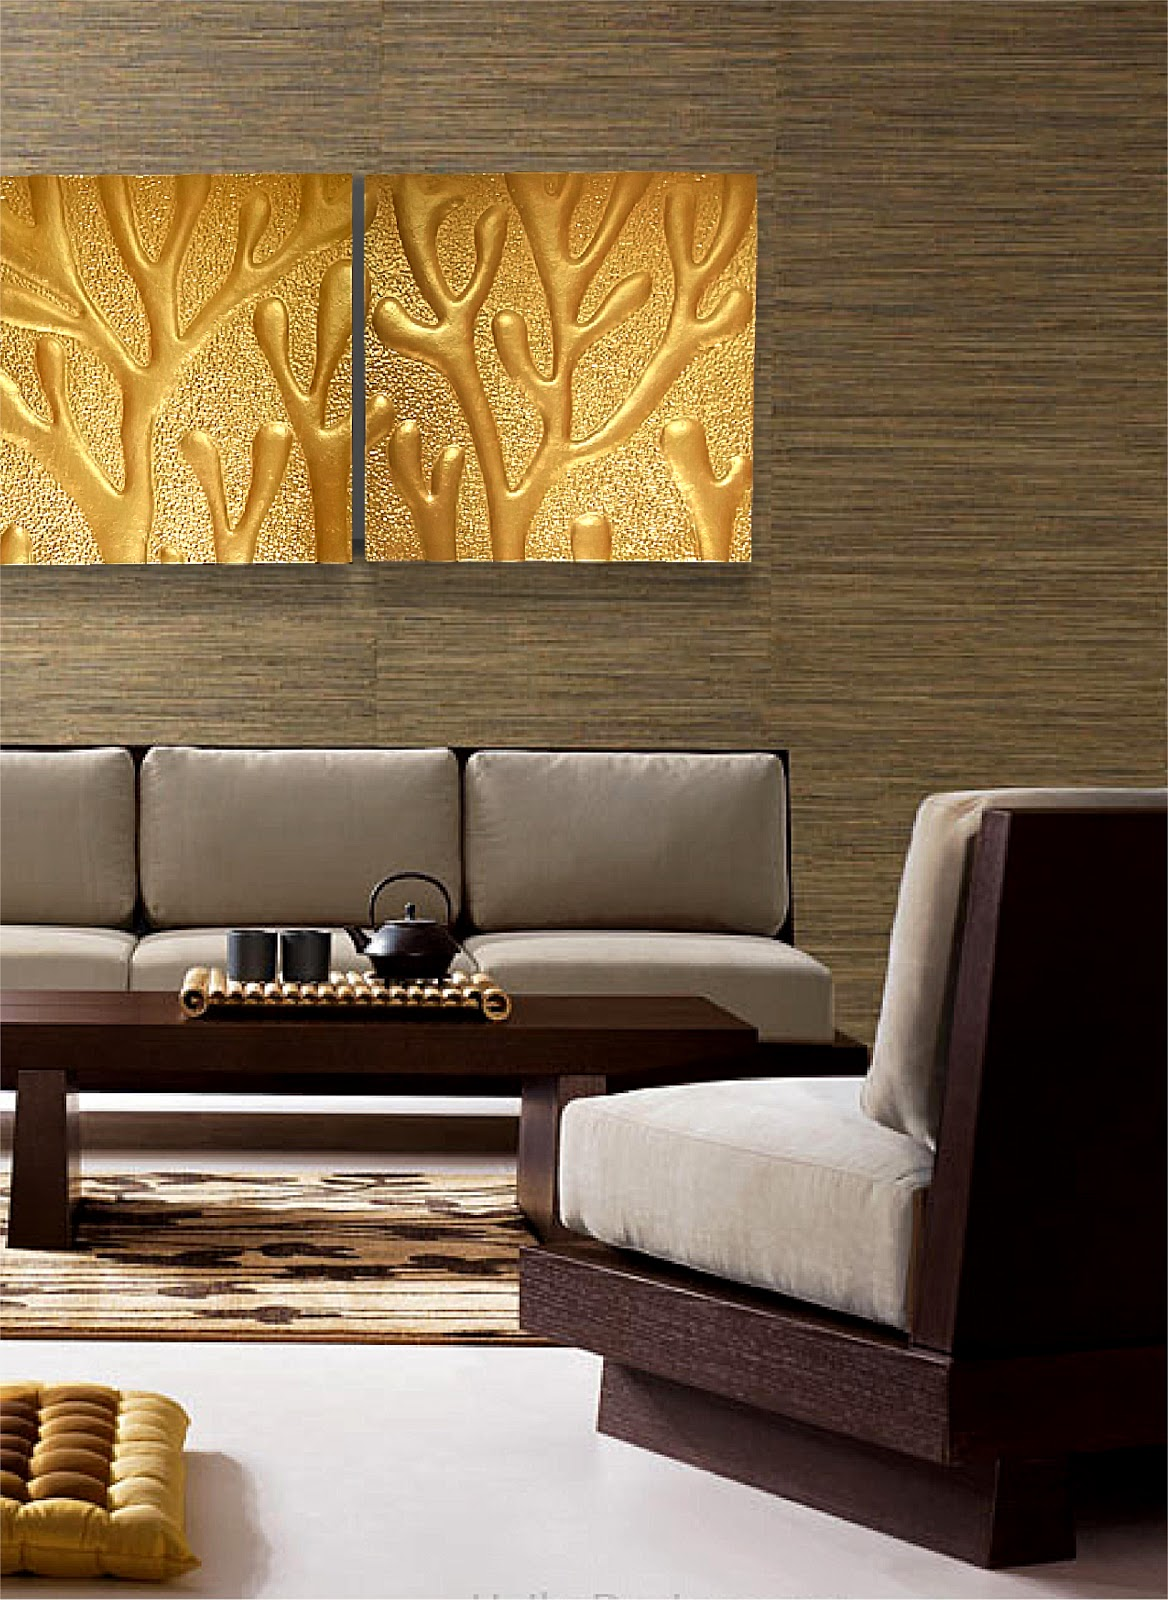 Living Room Wall Panel Design: Singapore's Latest Trend For Wall Decoration